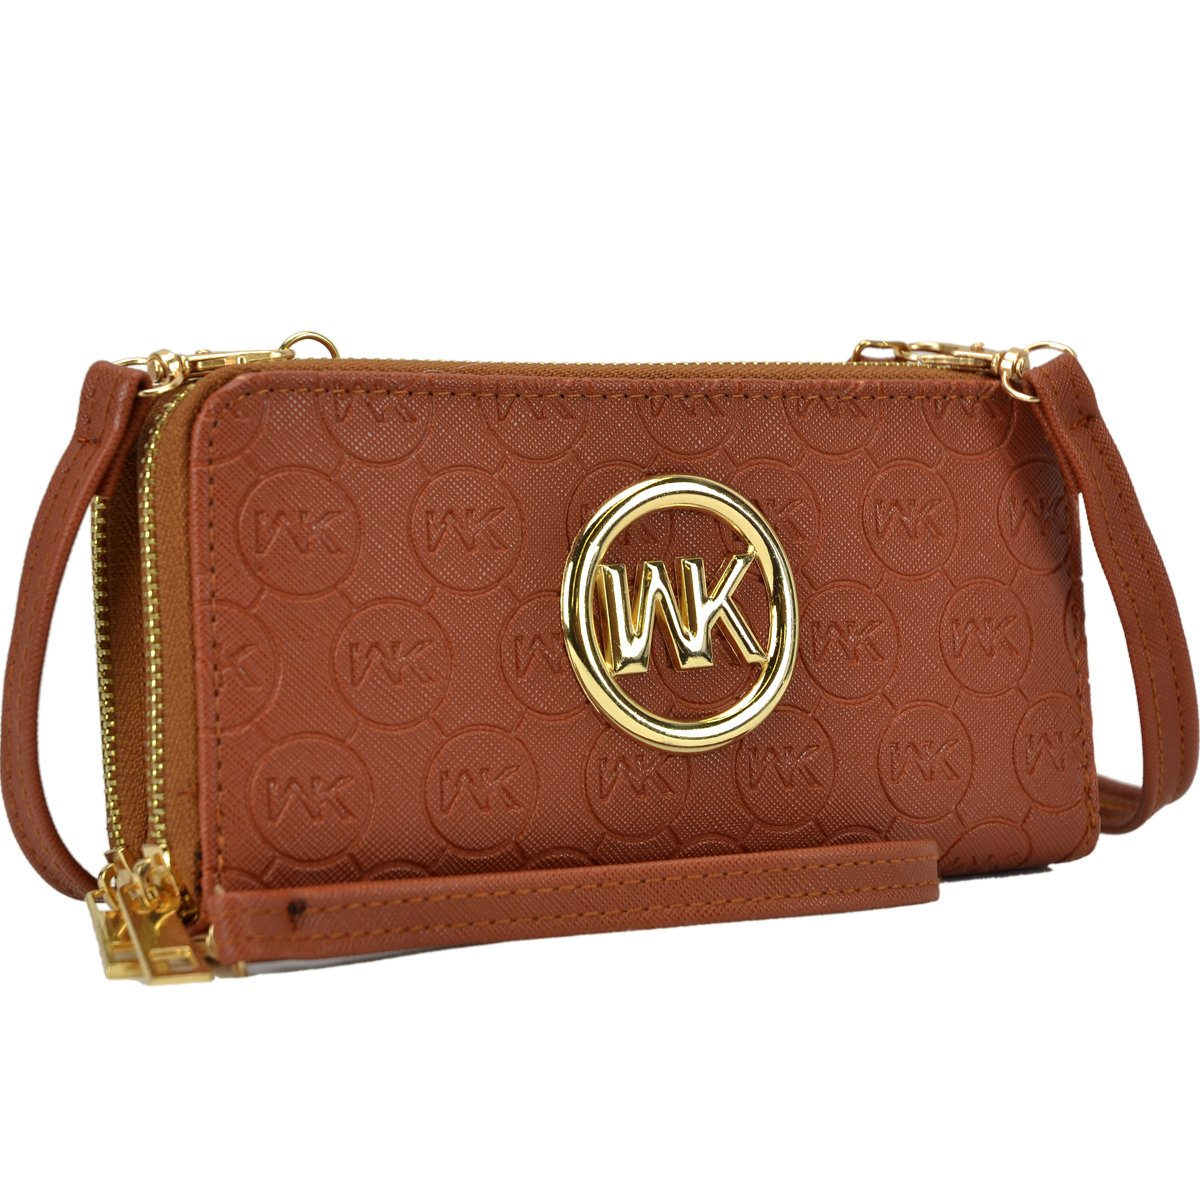 MMK Classic Card Case Double layer Zip Around Wallet for Women~Fashion Women Wallet With Wristlet Strap 1062-BR